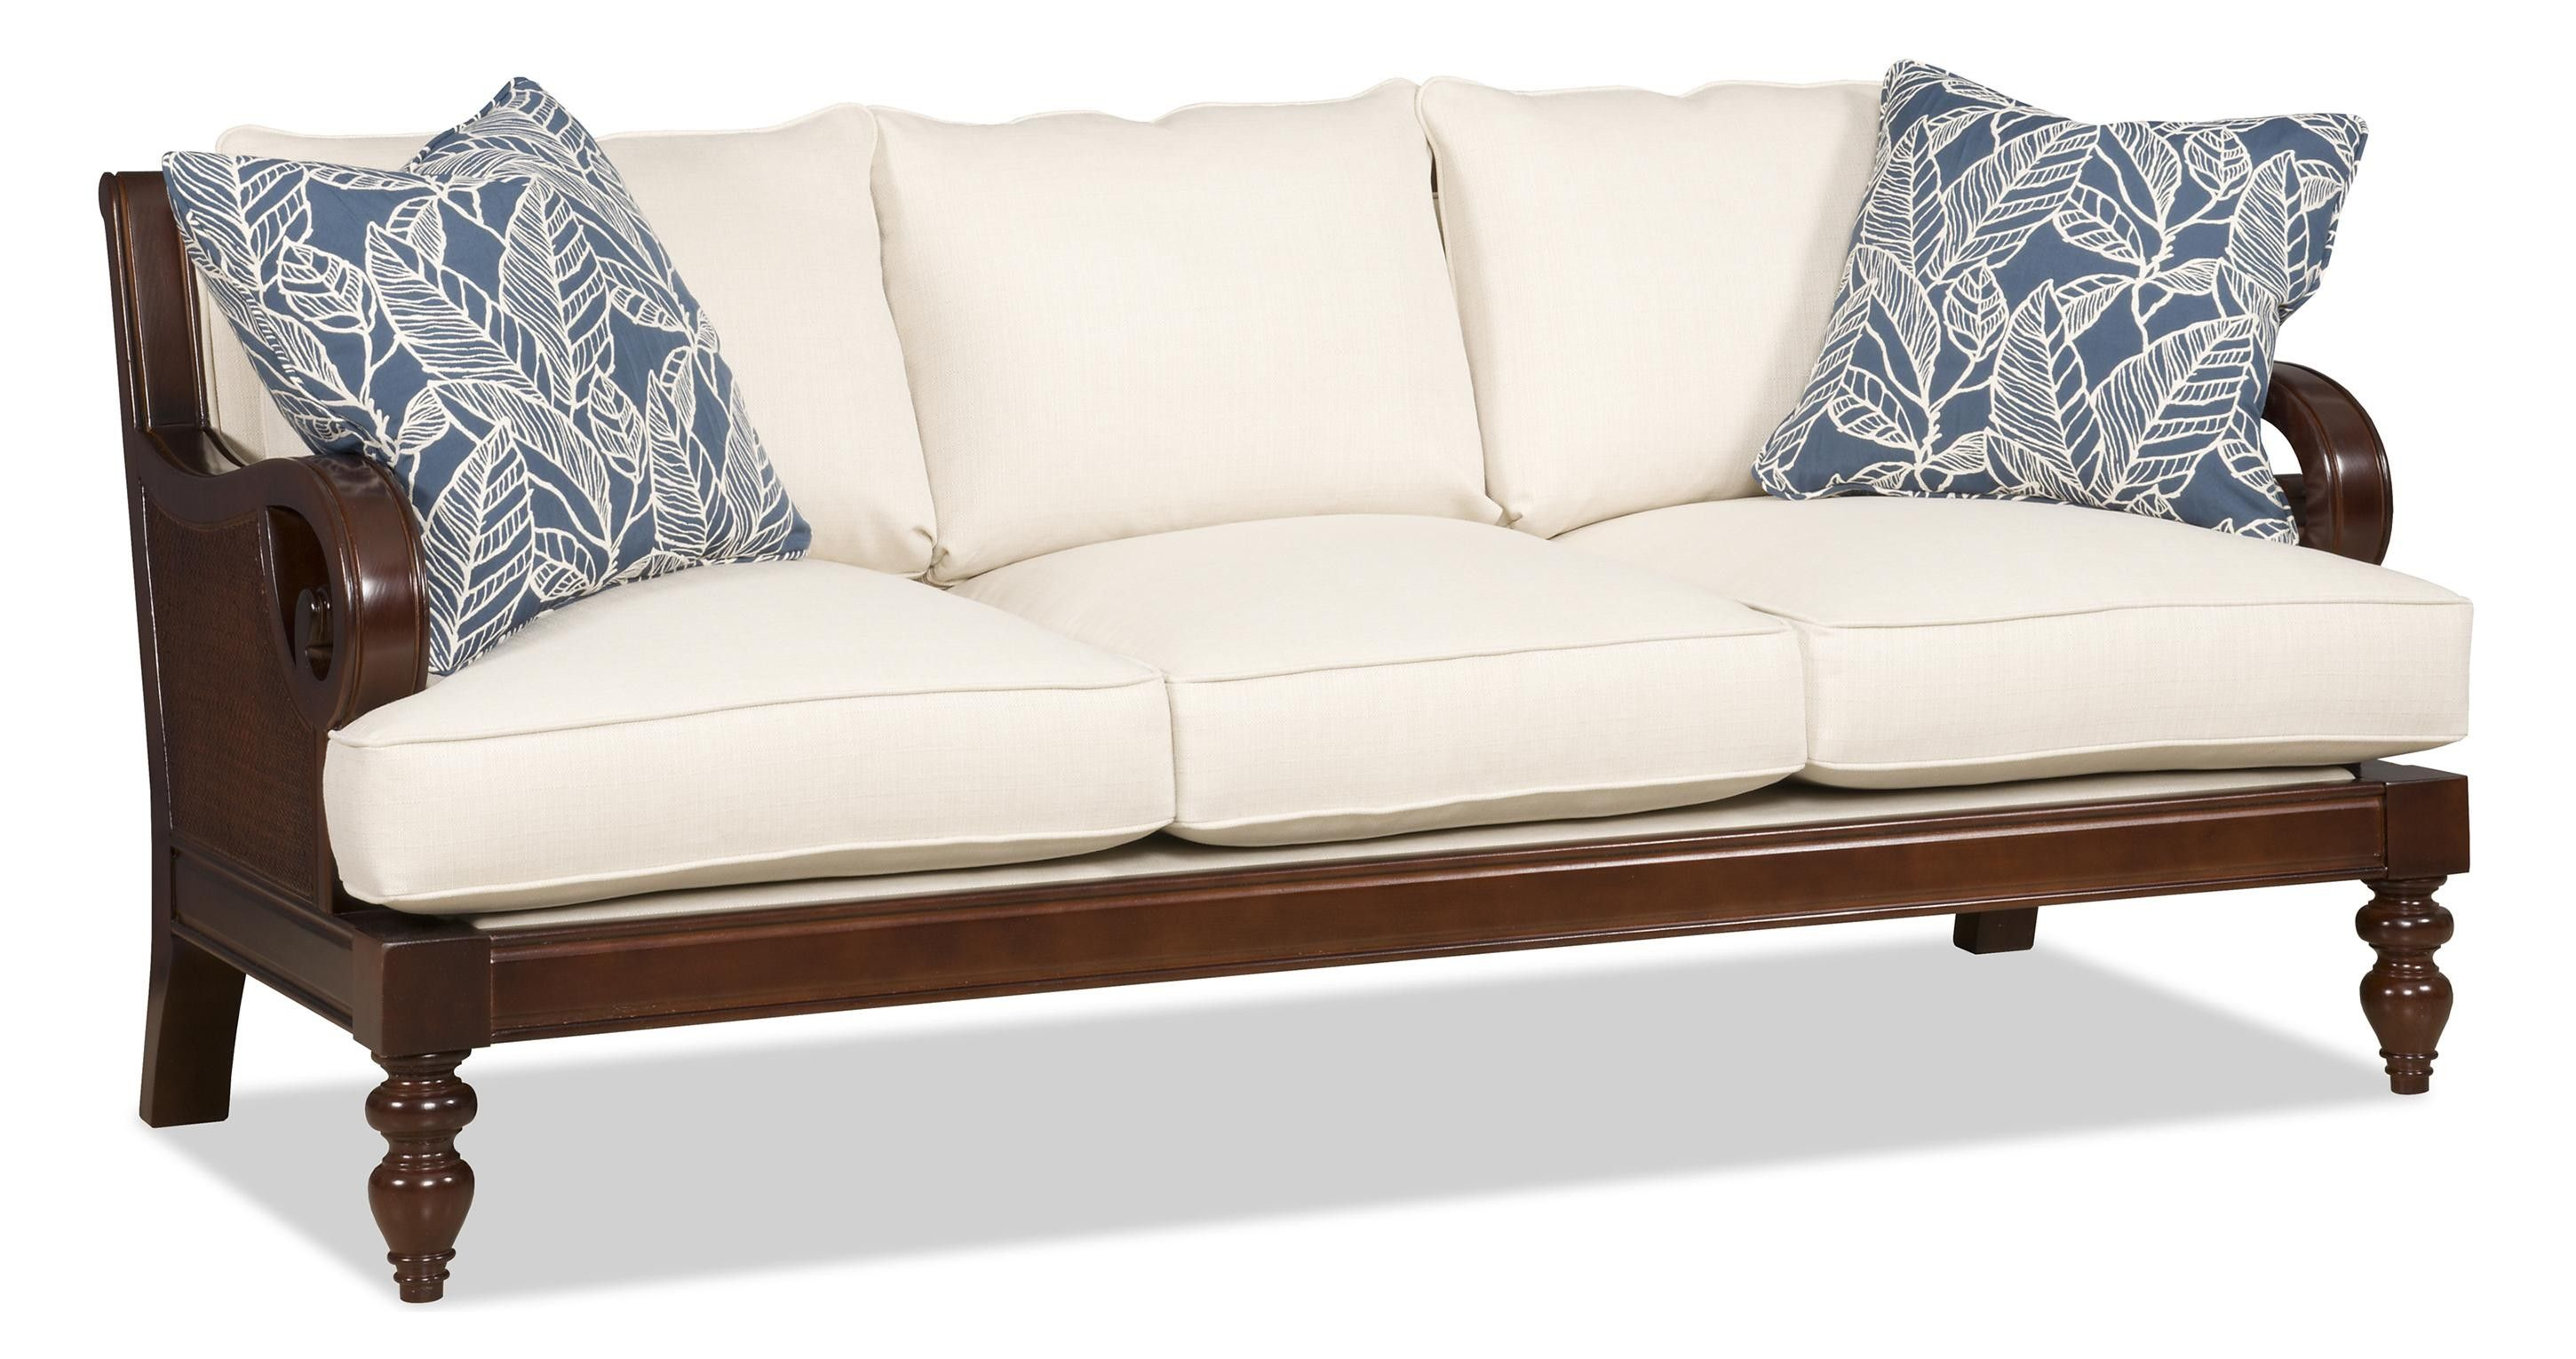 Awesome Exposed Wood Frame Sofa Makeover Furniture